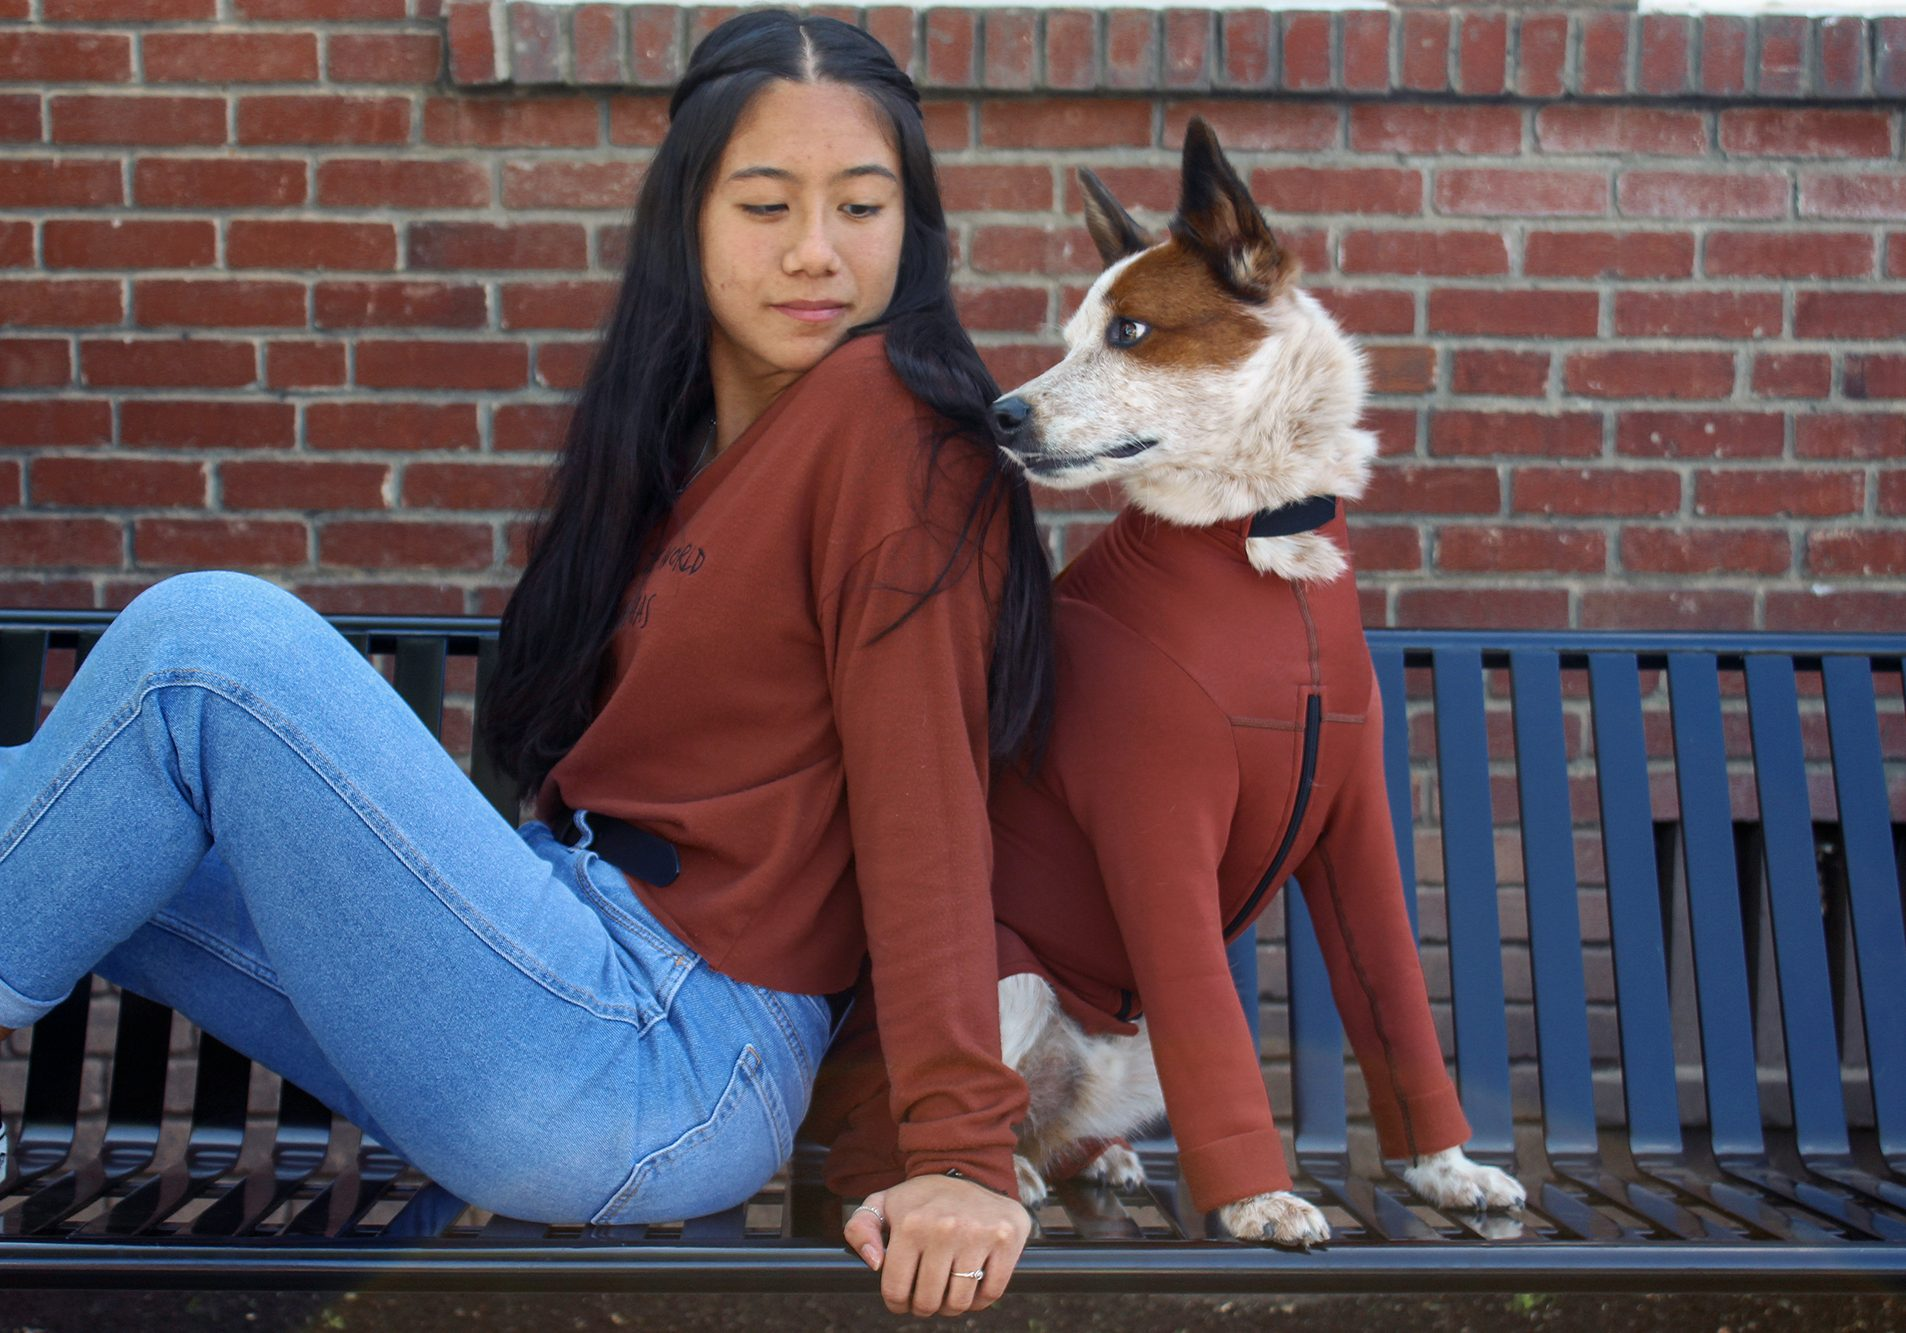 Co-founded in 1999 by June Lotz as a revolutionary way to protect our four-legged friends, K9 Top Coat designs and creates functional and fashionable bodysuits to solve common pet problems such as shedding, allergy relief and more.